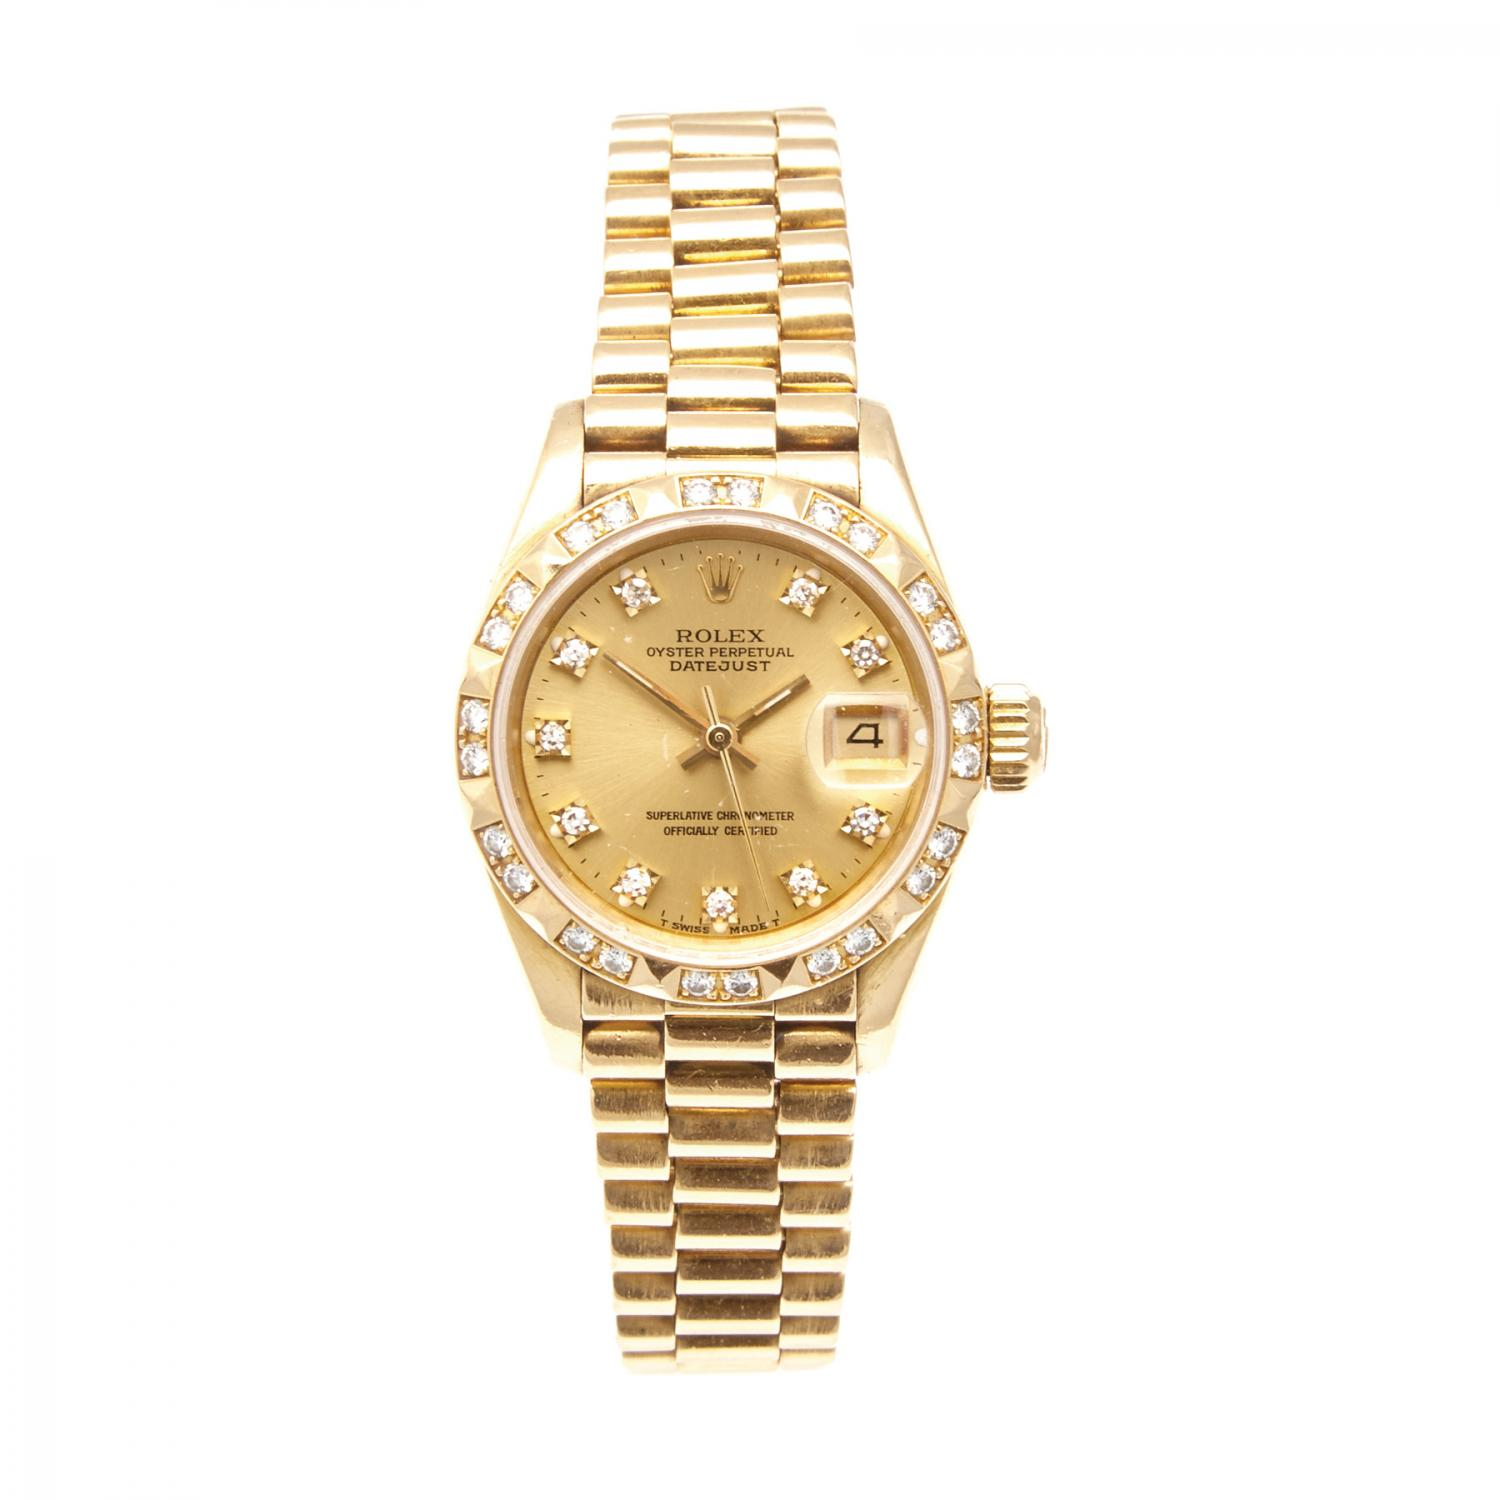 0788fb007ce Lot 616 of 170: A Gold and Diamond Rolex Oyster Perpetual Datejust  Wristwatch